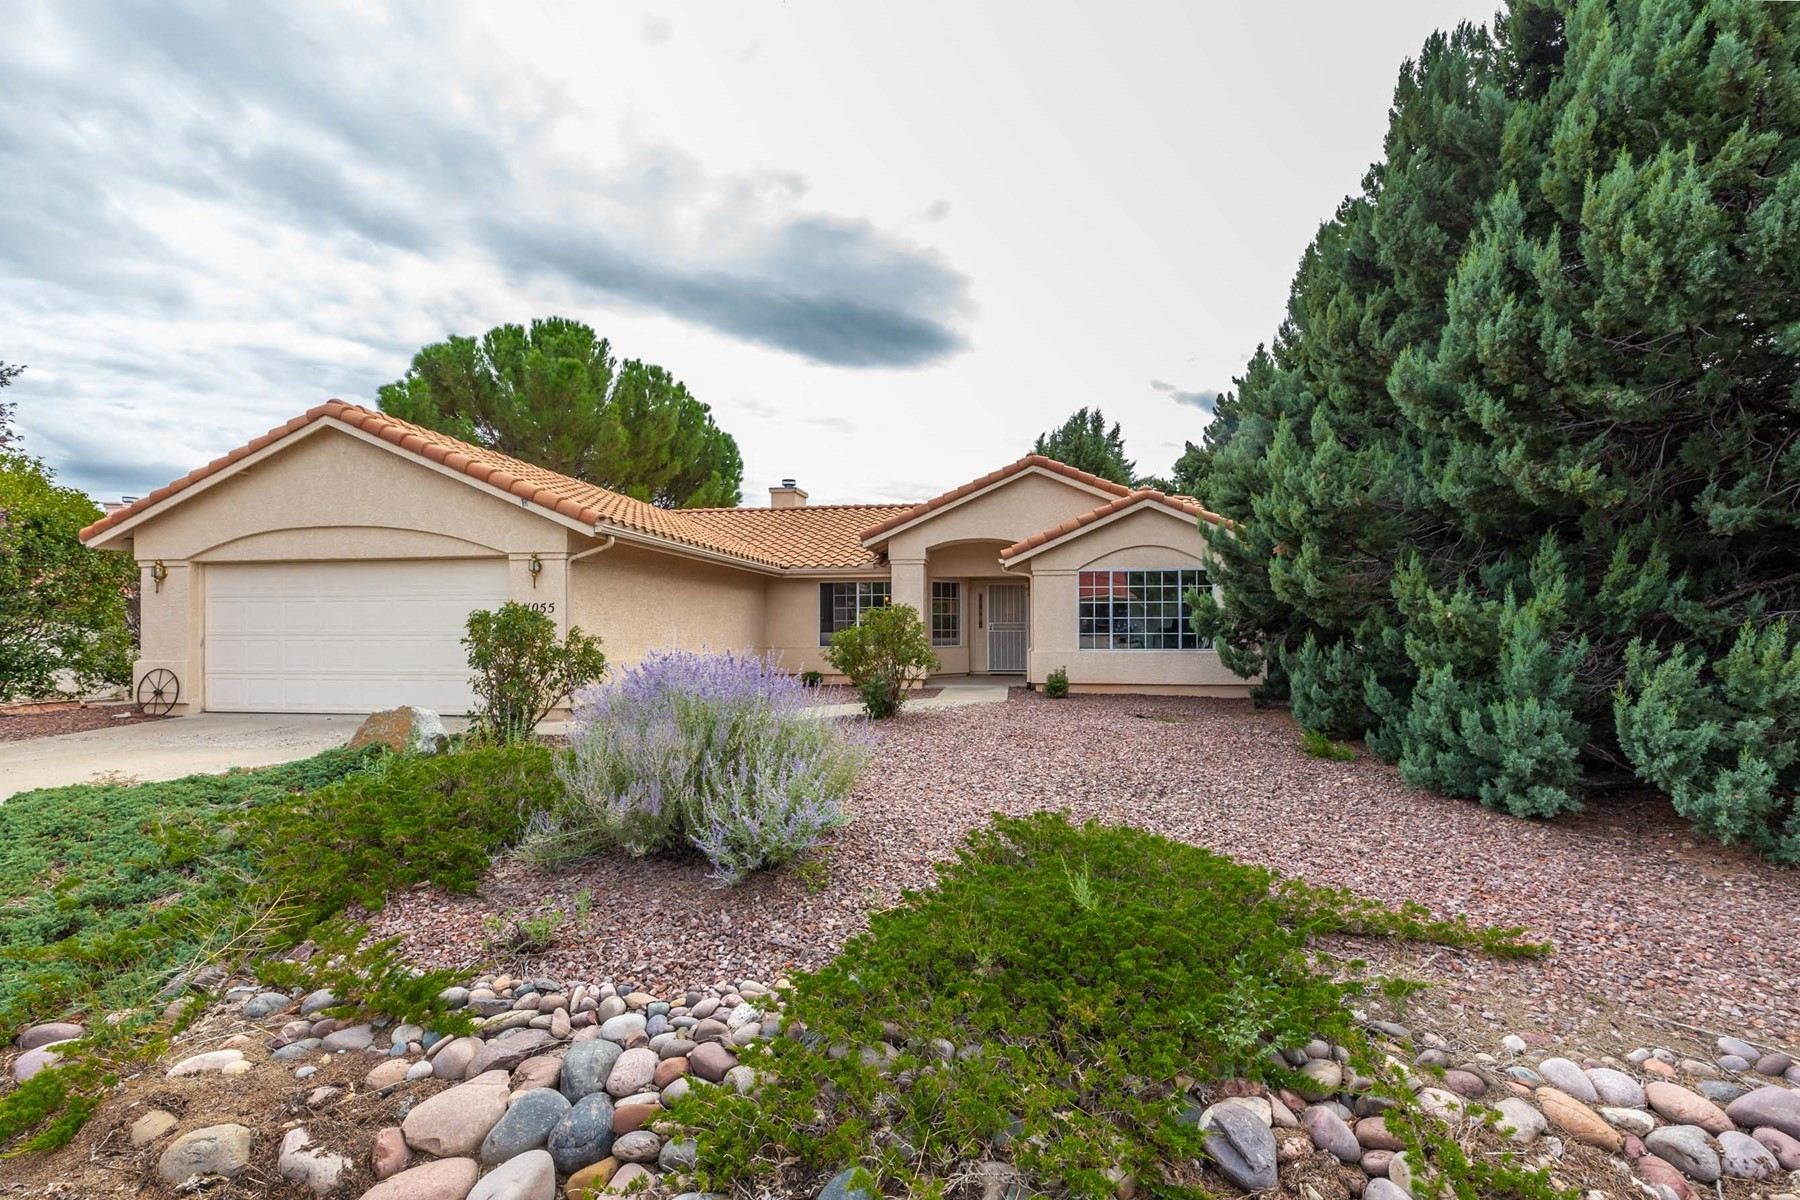 Single Family Homes for Sale at Prescott Country Club 11055 Lariat Lane Dewey Humboldt, Arizona 86327 United States